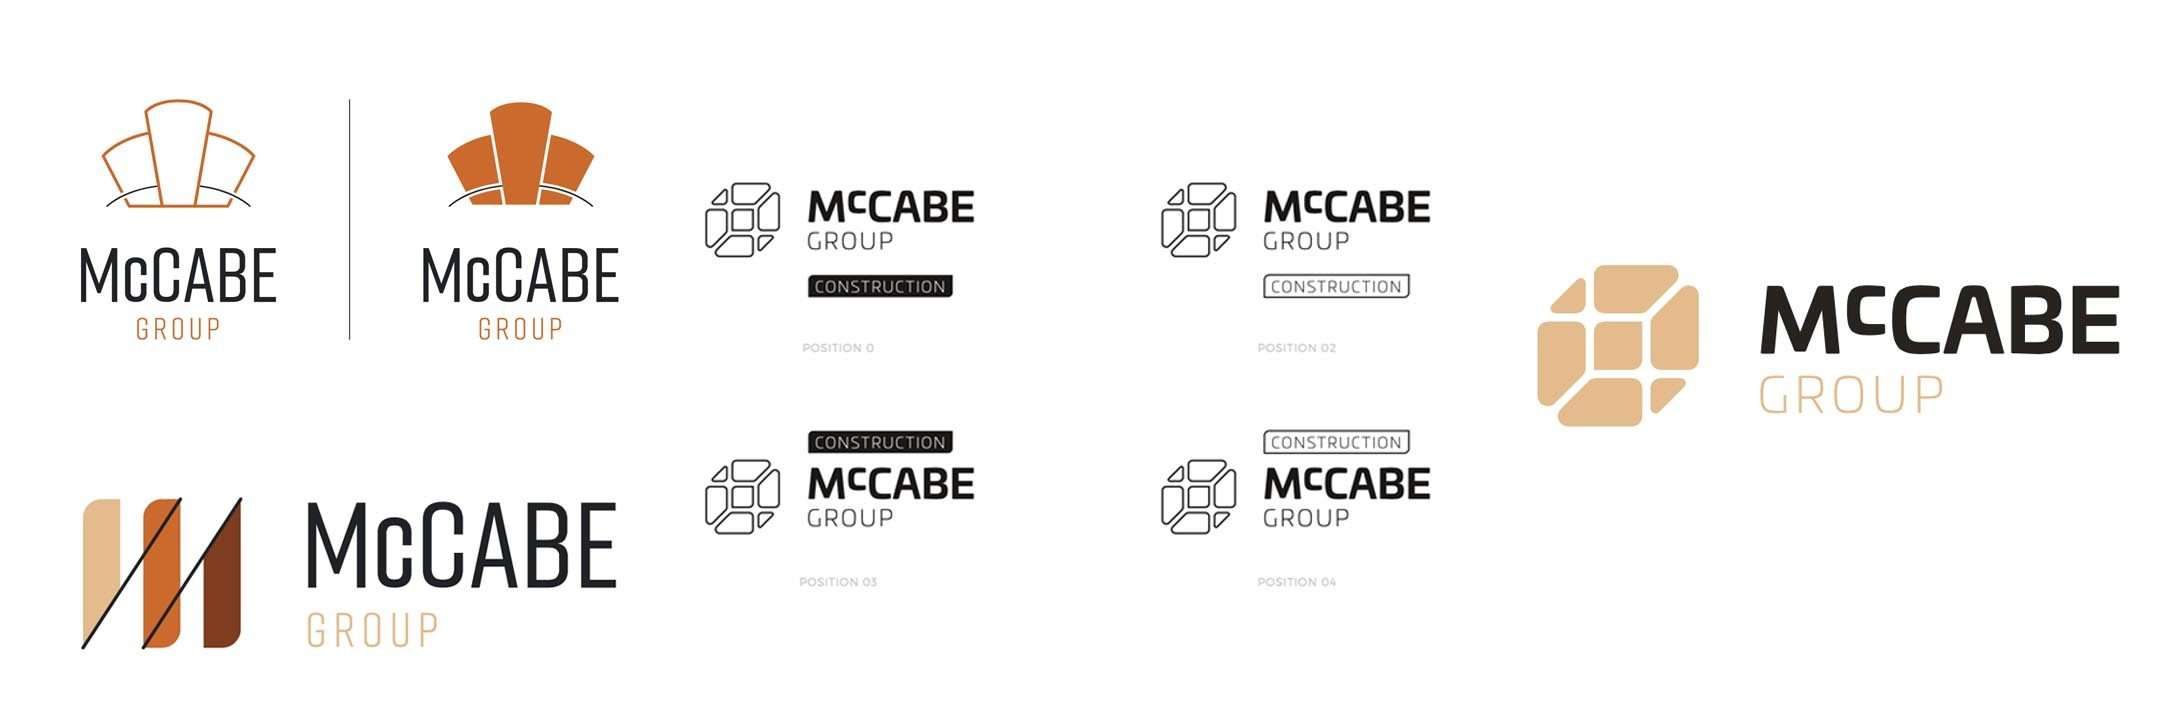 logo design and branding guidelines ireland agency Escalate Digital Marketing 2